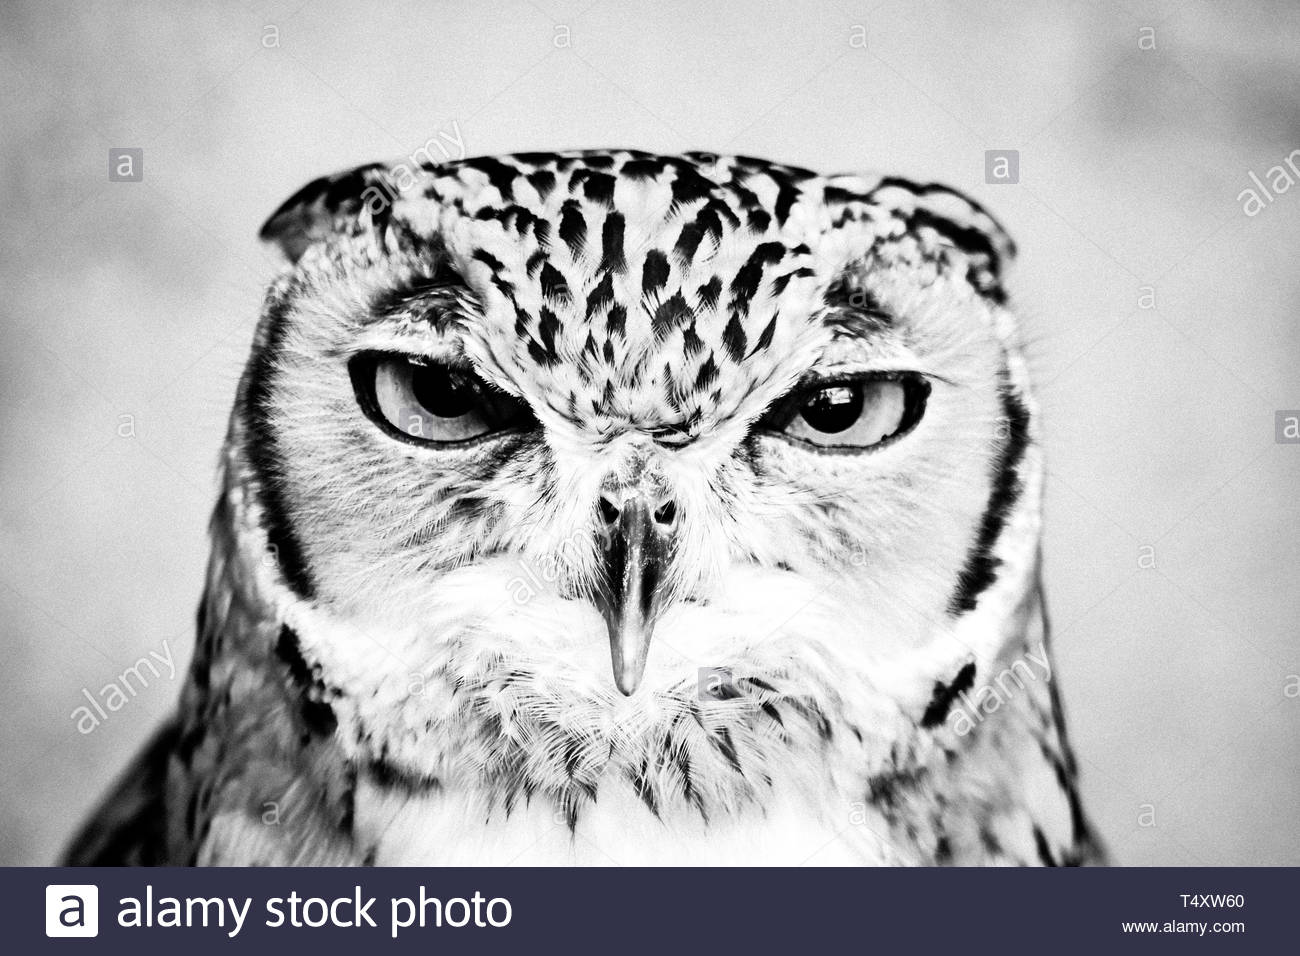 Owl photography black and white stock photos images alamy